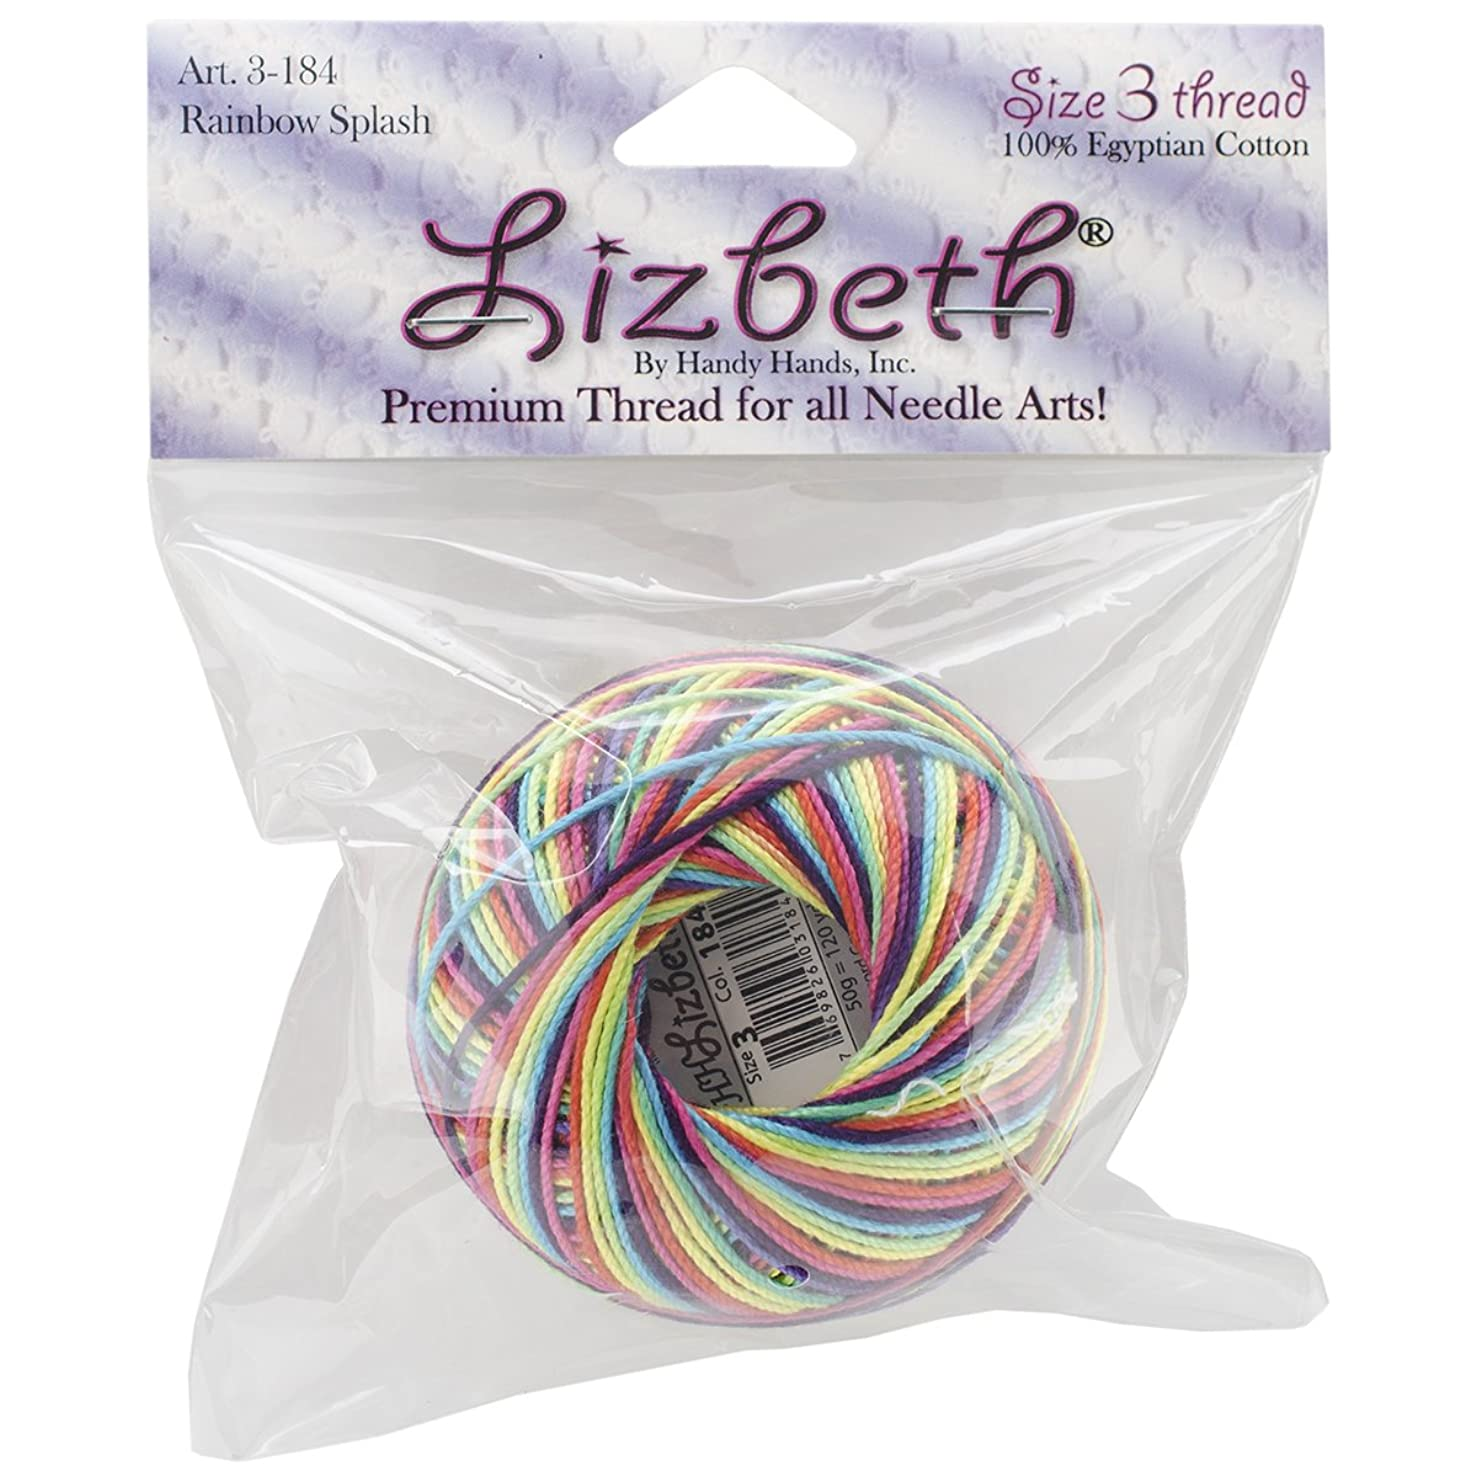 Handy Hands Lizbeth Cordonnet Cotton, 3, Rainbow Splash